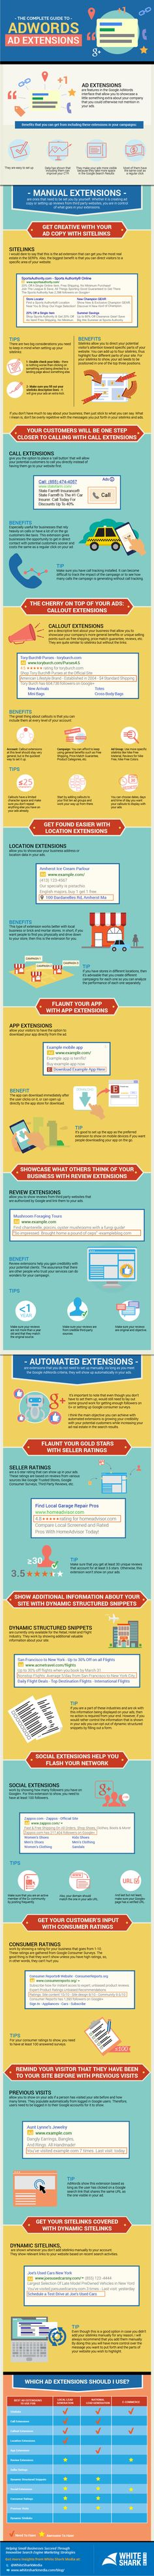 The Complete Guide to AdWords Ad Extensions [Infographic] http://snip.ly/hVbW?utm_content=buffer76c12&utm_medium=social&utm_source=pinterest.com&utm_campaign=buffer